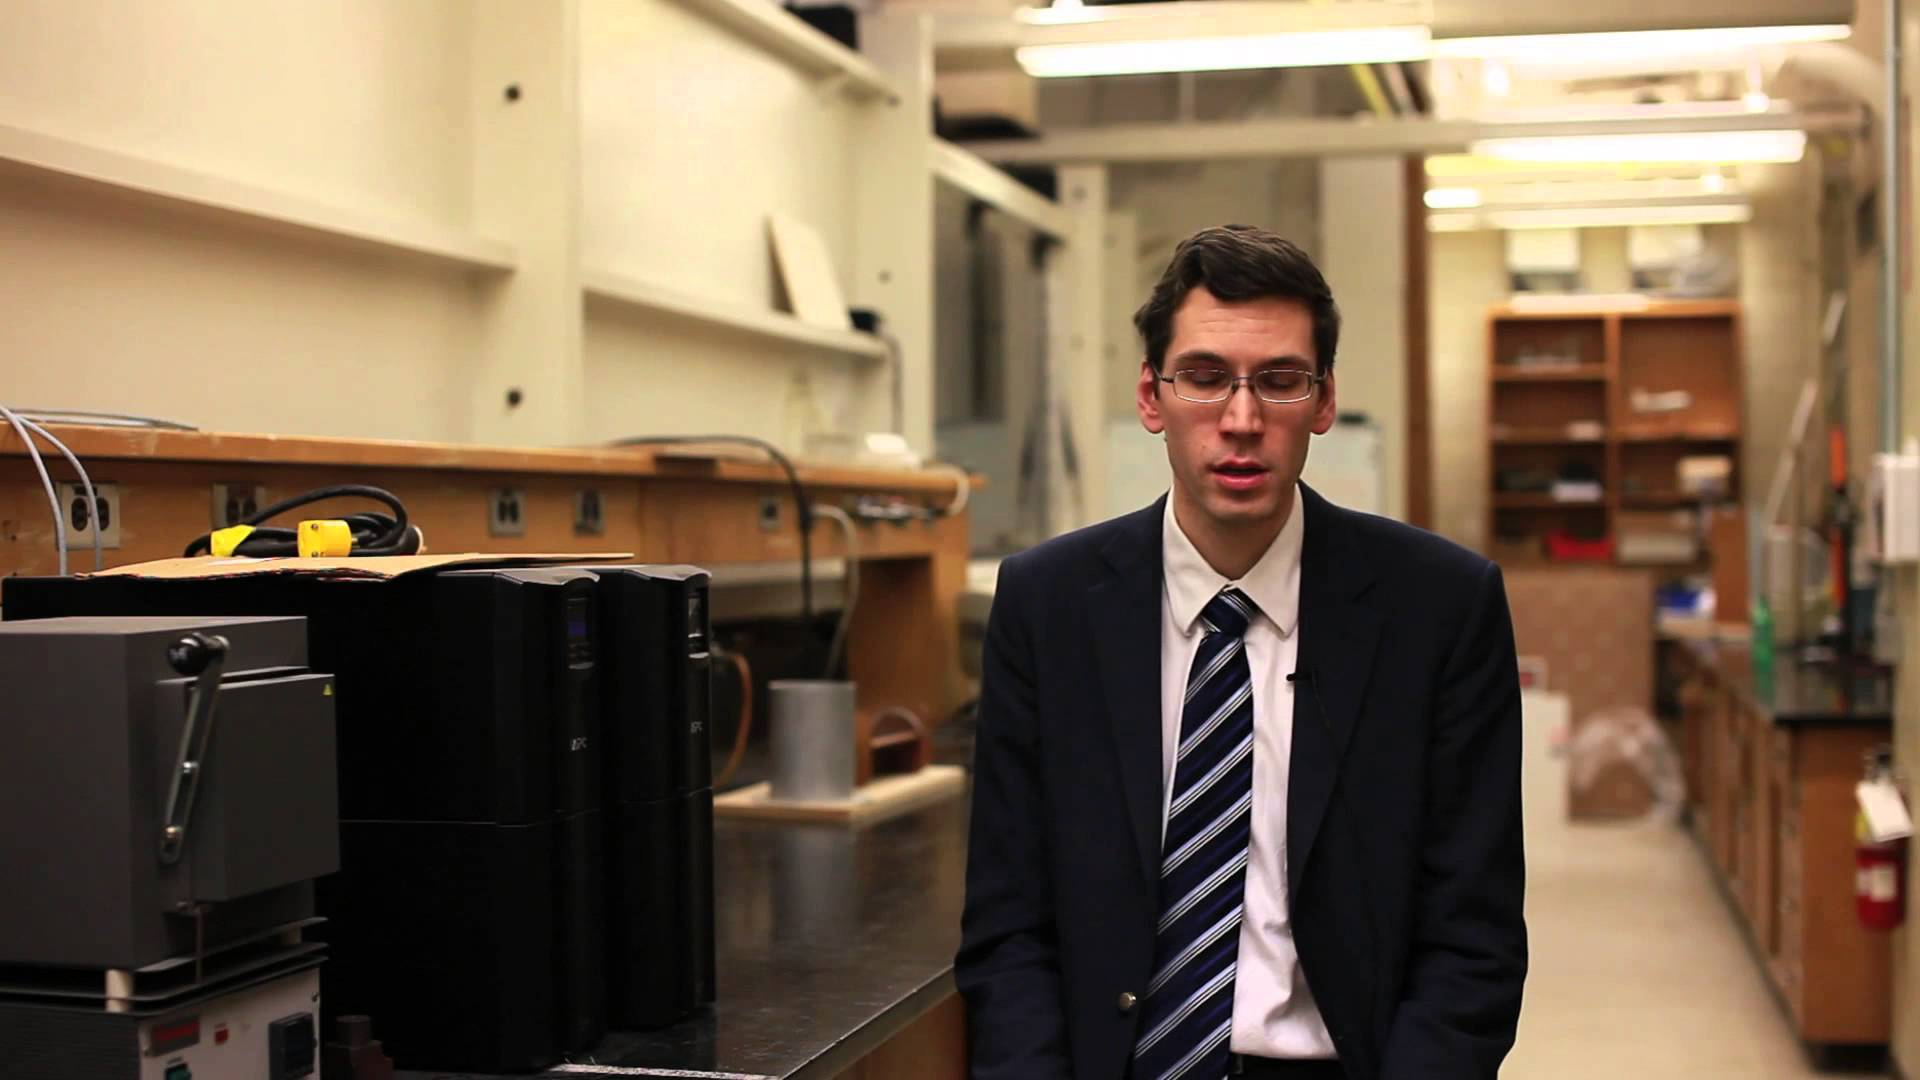 Watch Video: Carleton's Master's Programs in Sustainable Energy